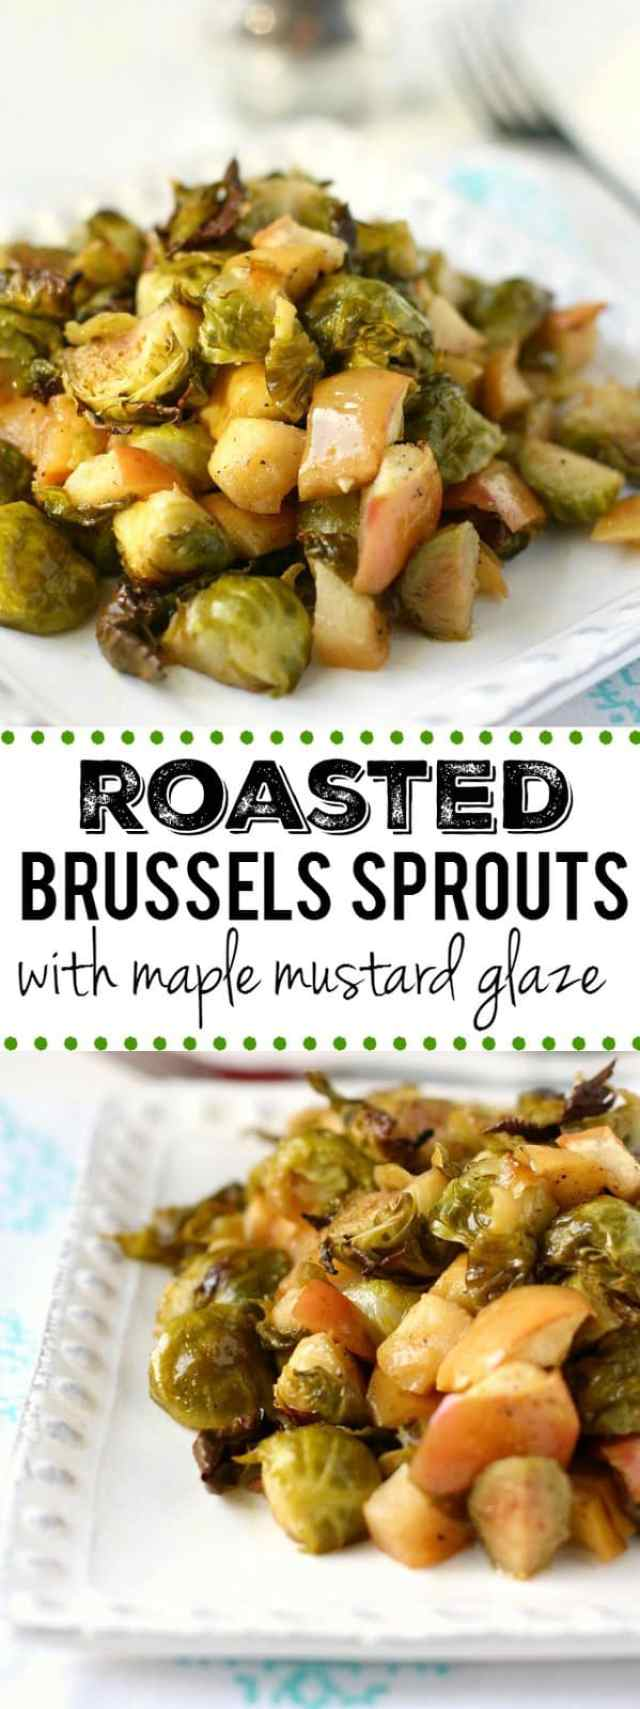 Make brussels sprouts stand out at the holiday table with a delicious maple mustard glaze! Gluten free, paleo, and vegan recipe.